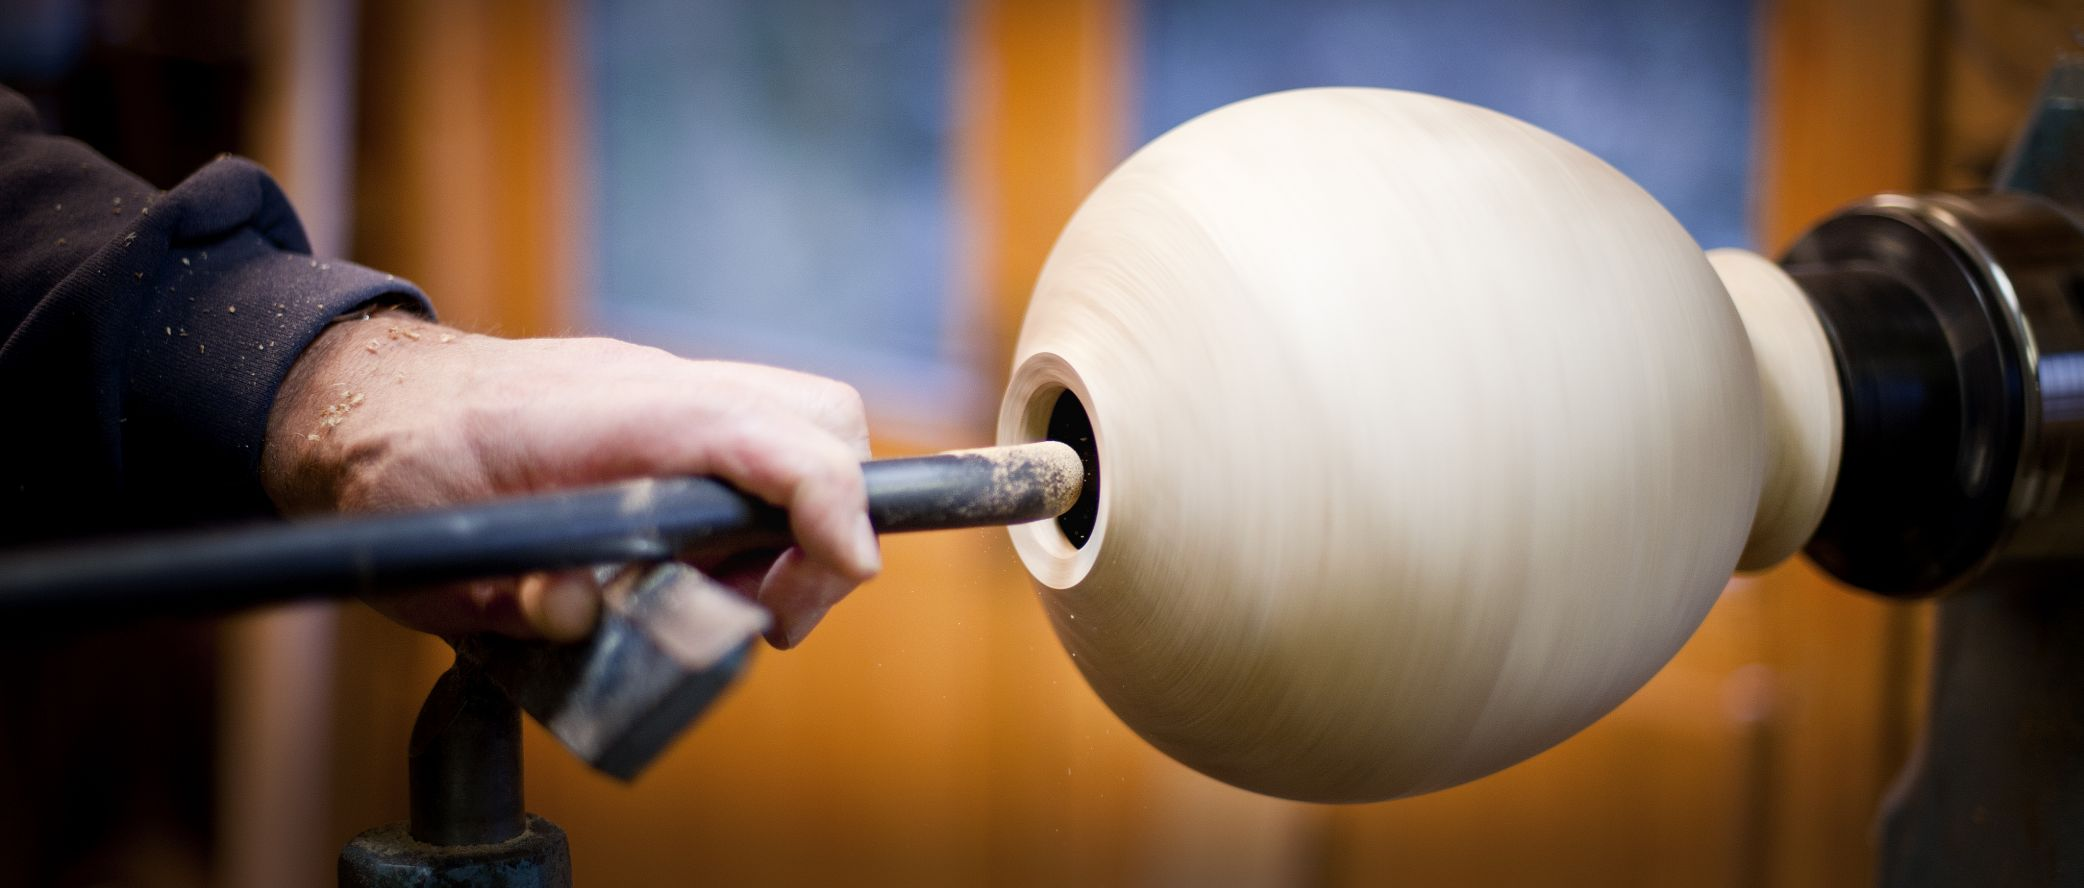 The Hollower Woodturning Course with Phil Irons